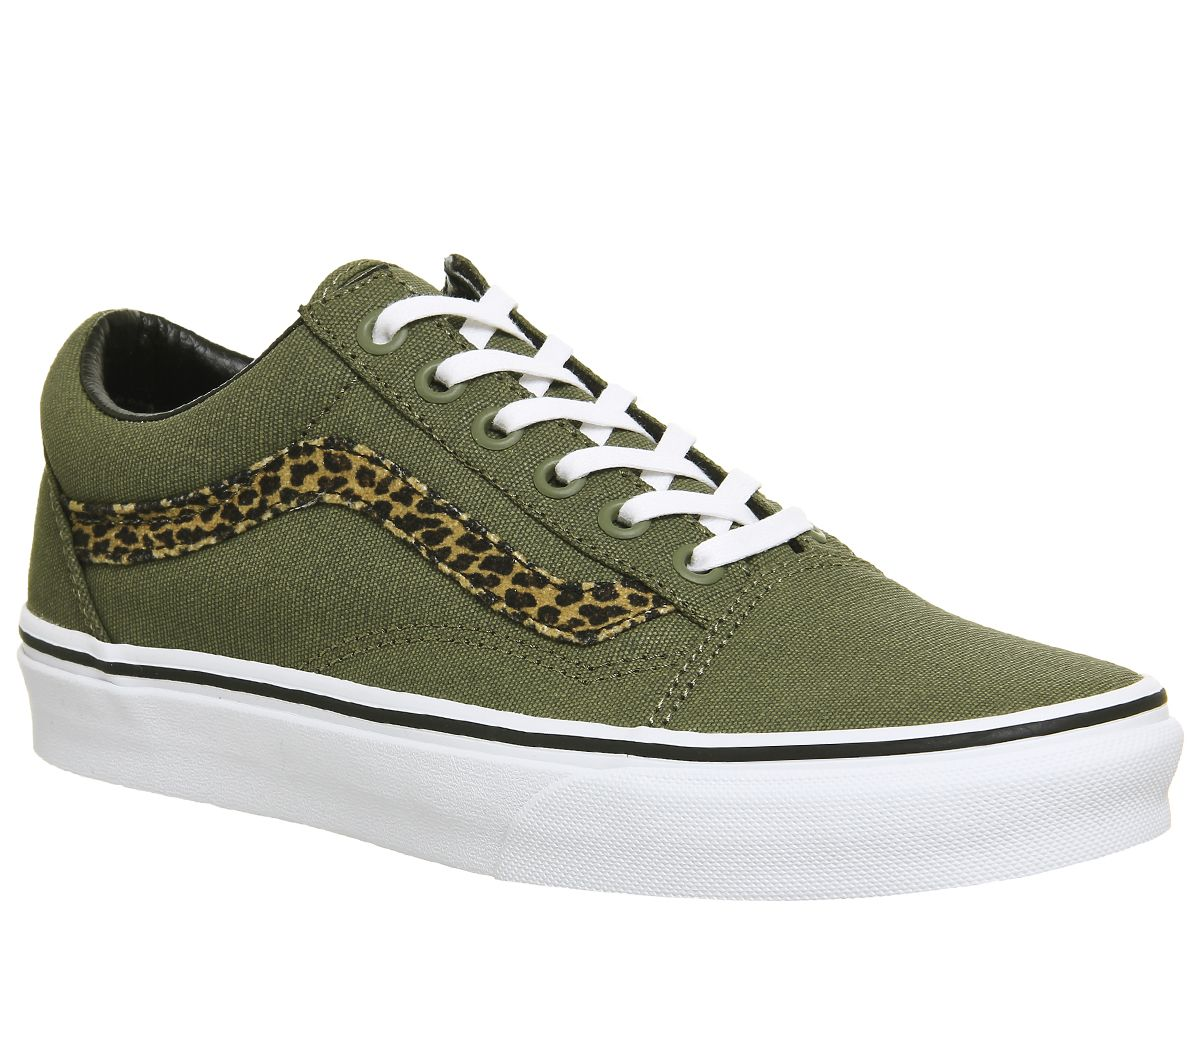 44438e38fd Vans Old Skool Trainers Mini Leopard Army Green White - Hers trainers